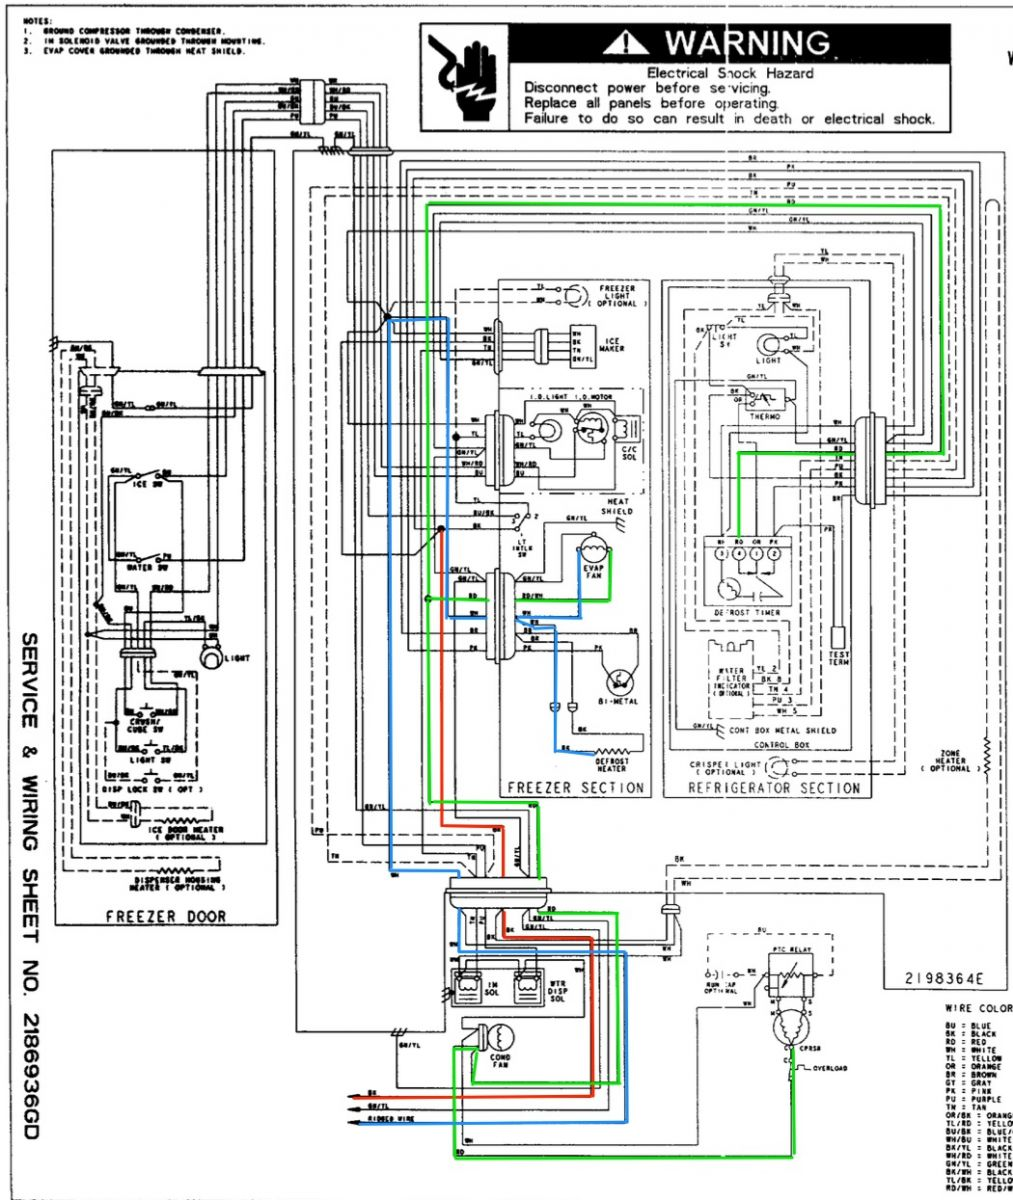 hight resolution of whirlpool ed25rfxfw01 refrigerator wiring diagram